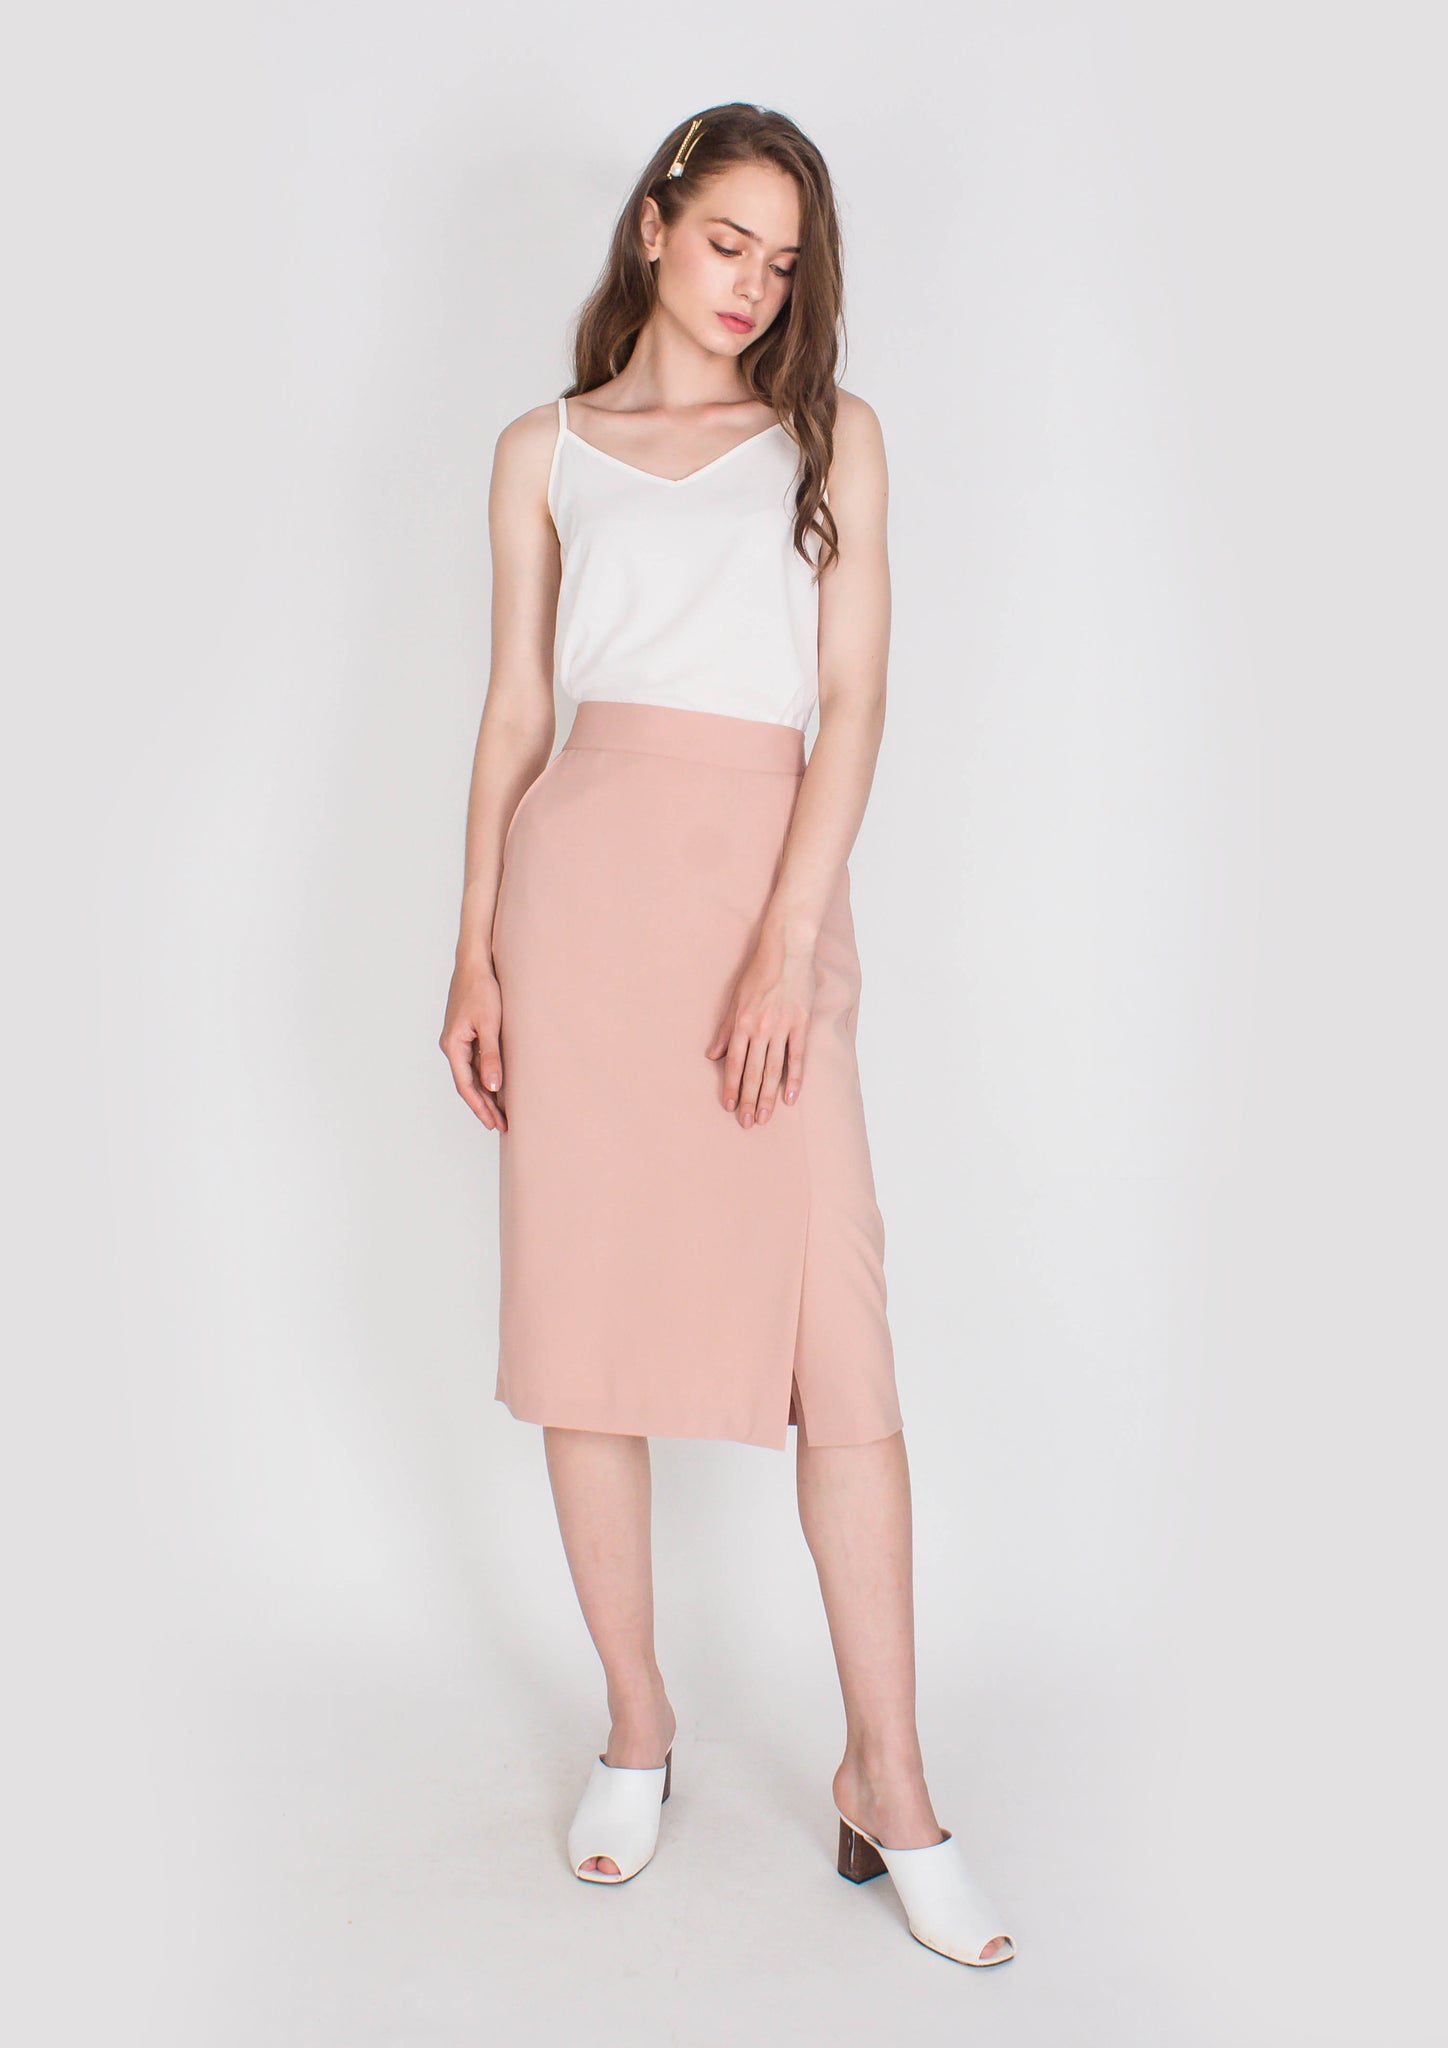 Hepburn Pencil Skirt with Side Slit (Dusty Pink)